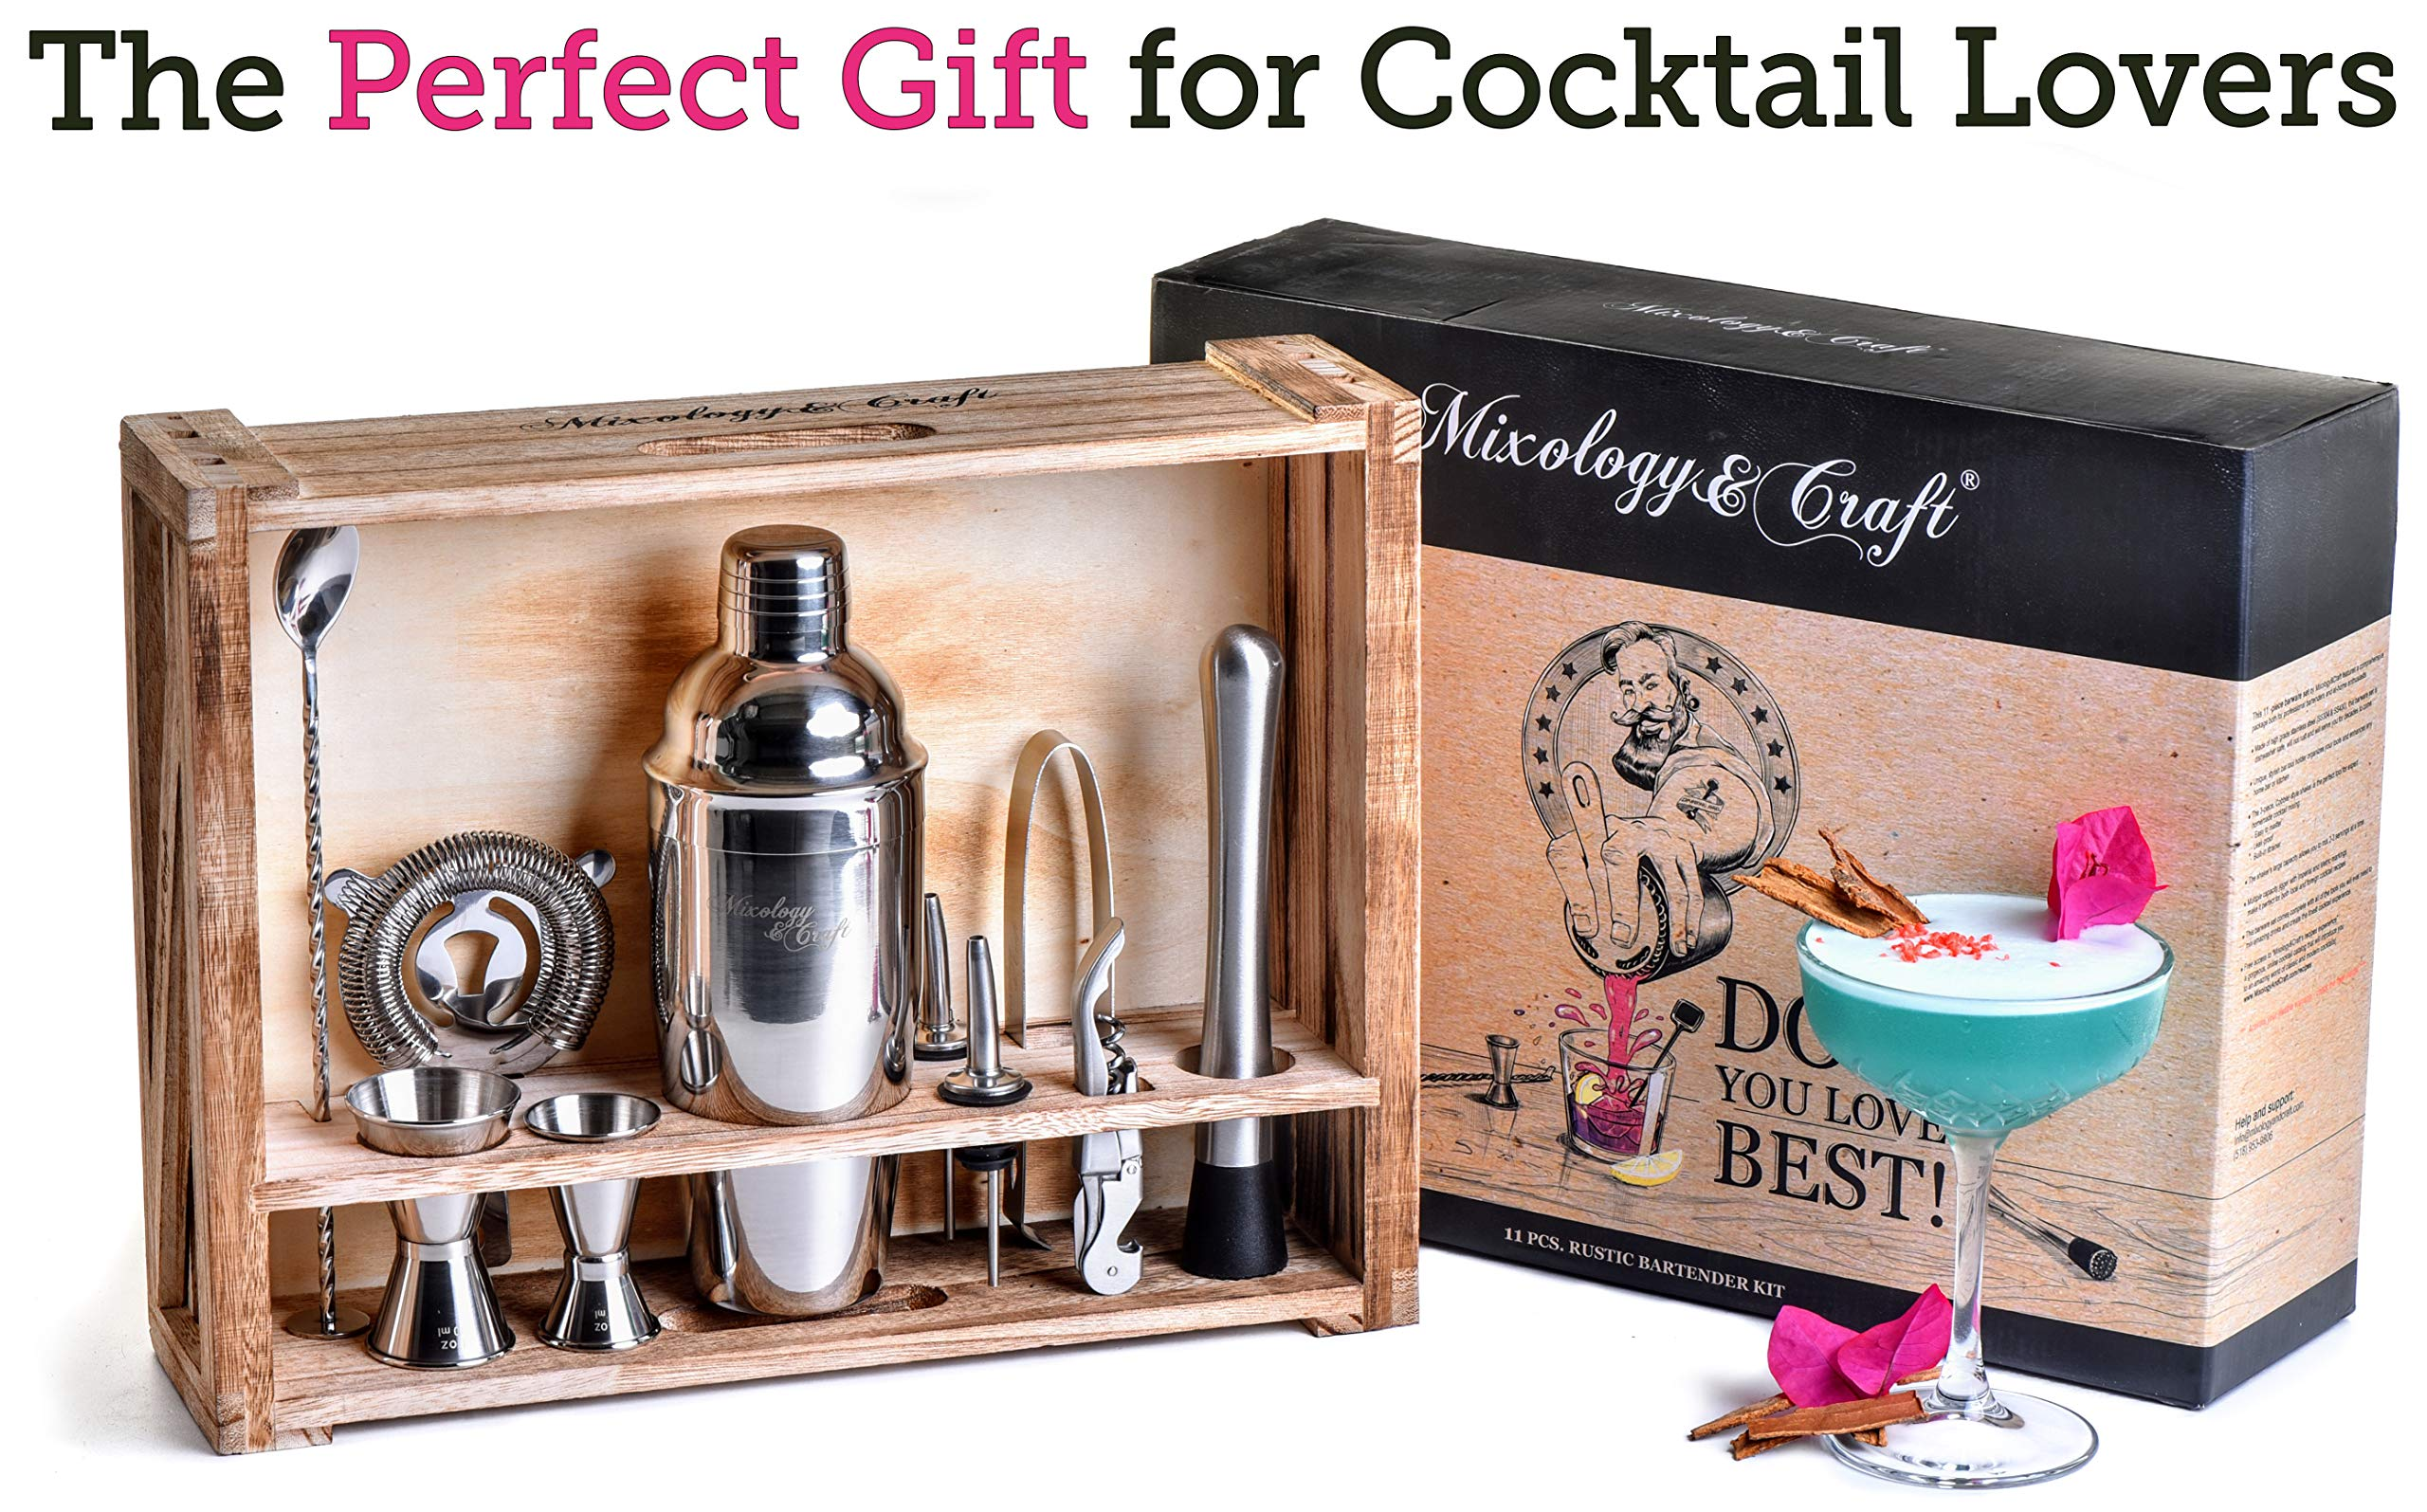 Mixology Bartender Kit: 11-Piece Bar Tool Set with Rustic Wood Stand - Perfect Home Bartending Kit and Cocktail Shaker Set For an Awesome Drink Mixing Experience - Exclusive Cocktail Recipes Bonus by Mixology & Craft (Image #3)